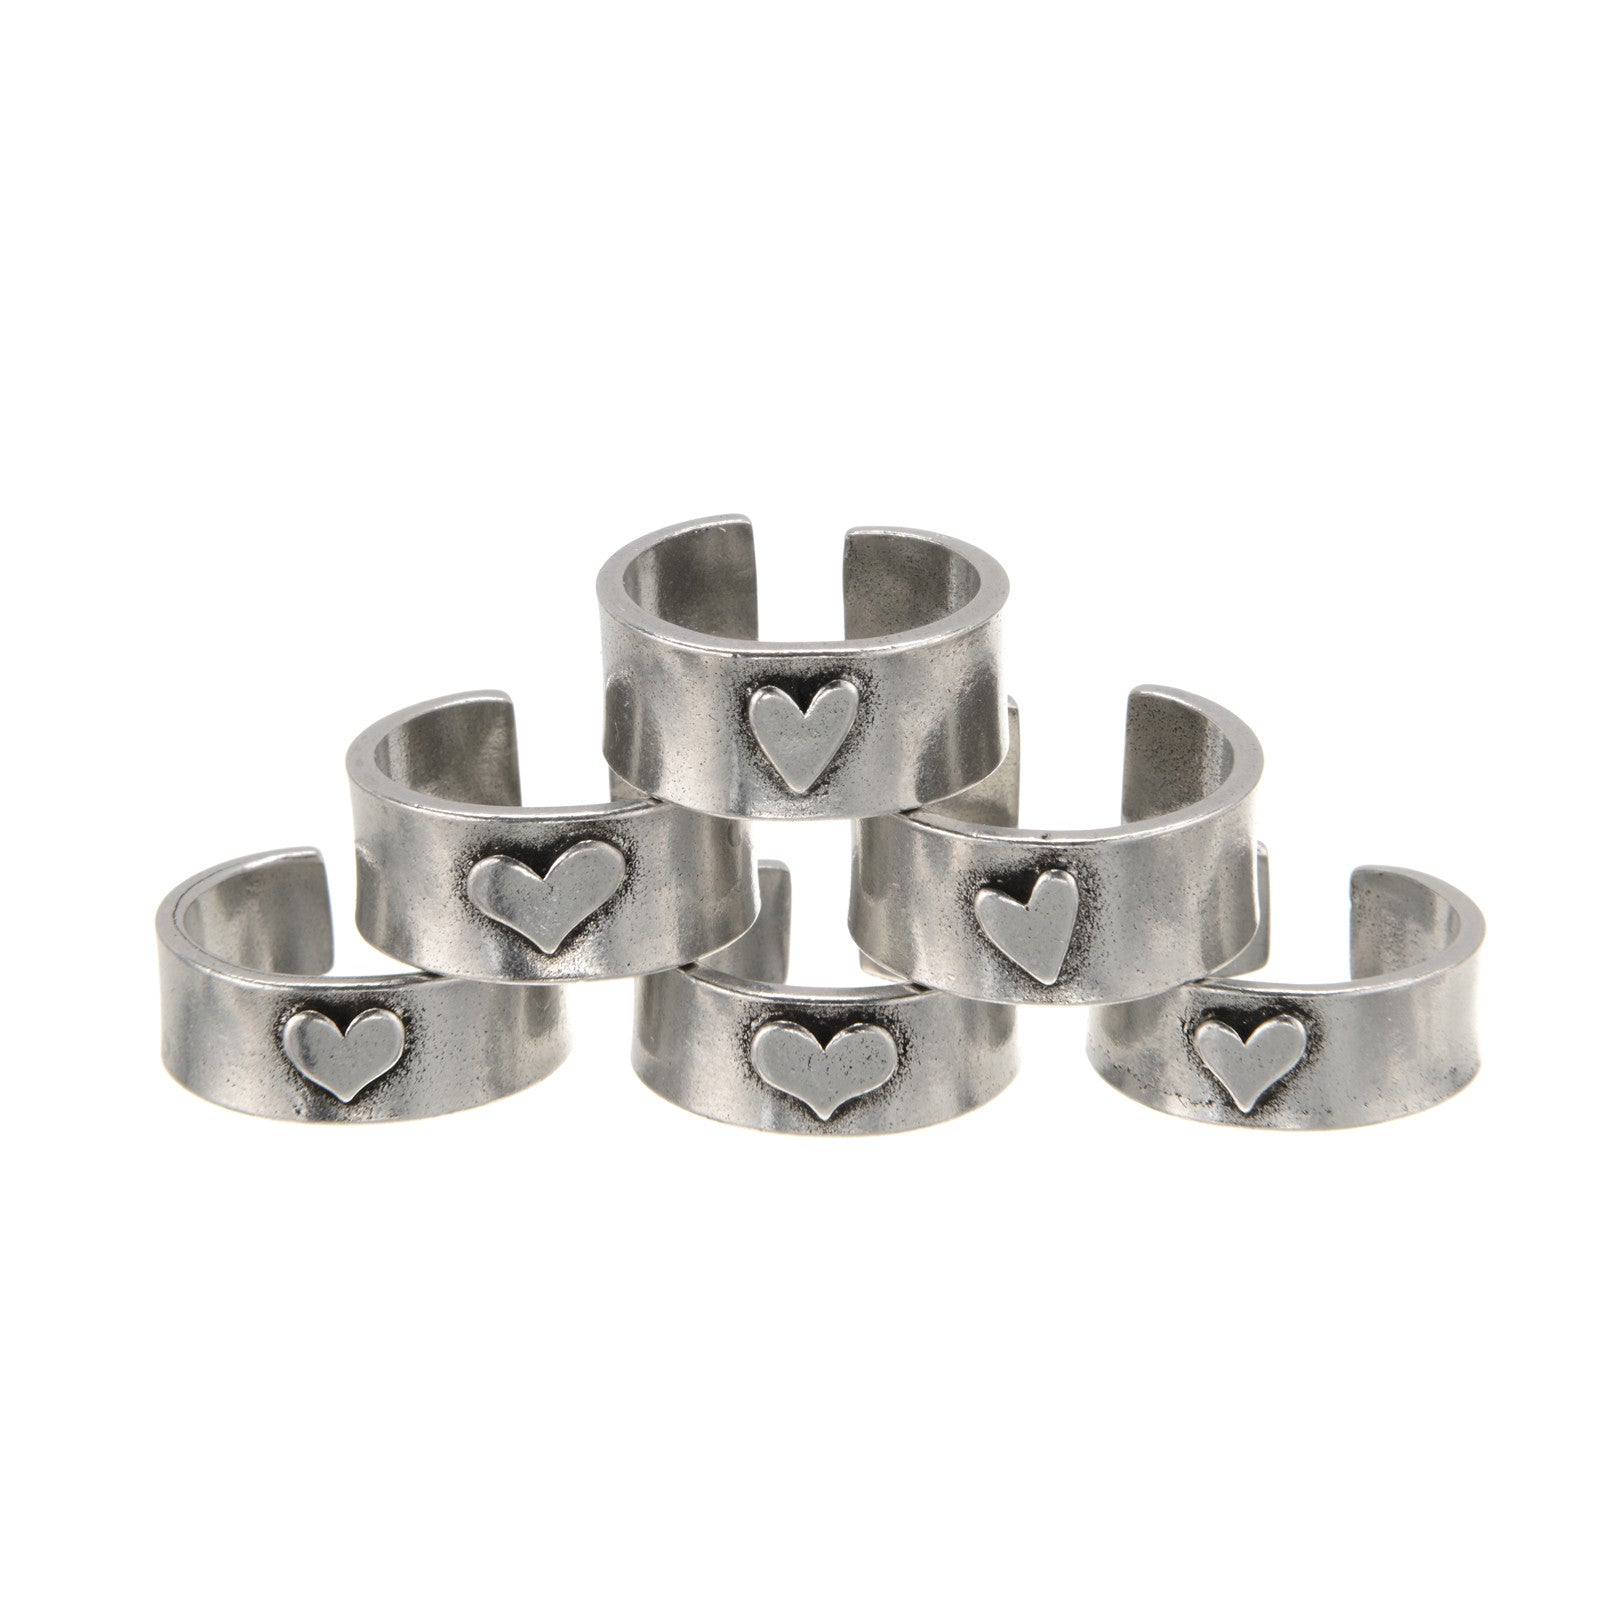 Brave Heart Ring - Whitney Howard Designs